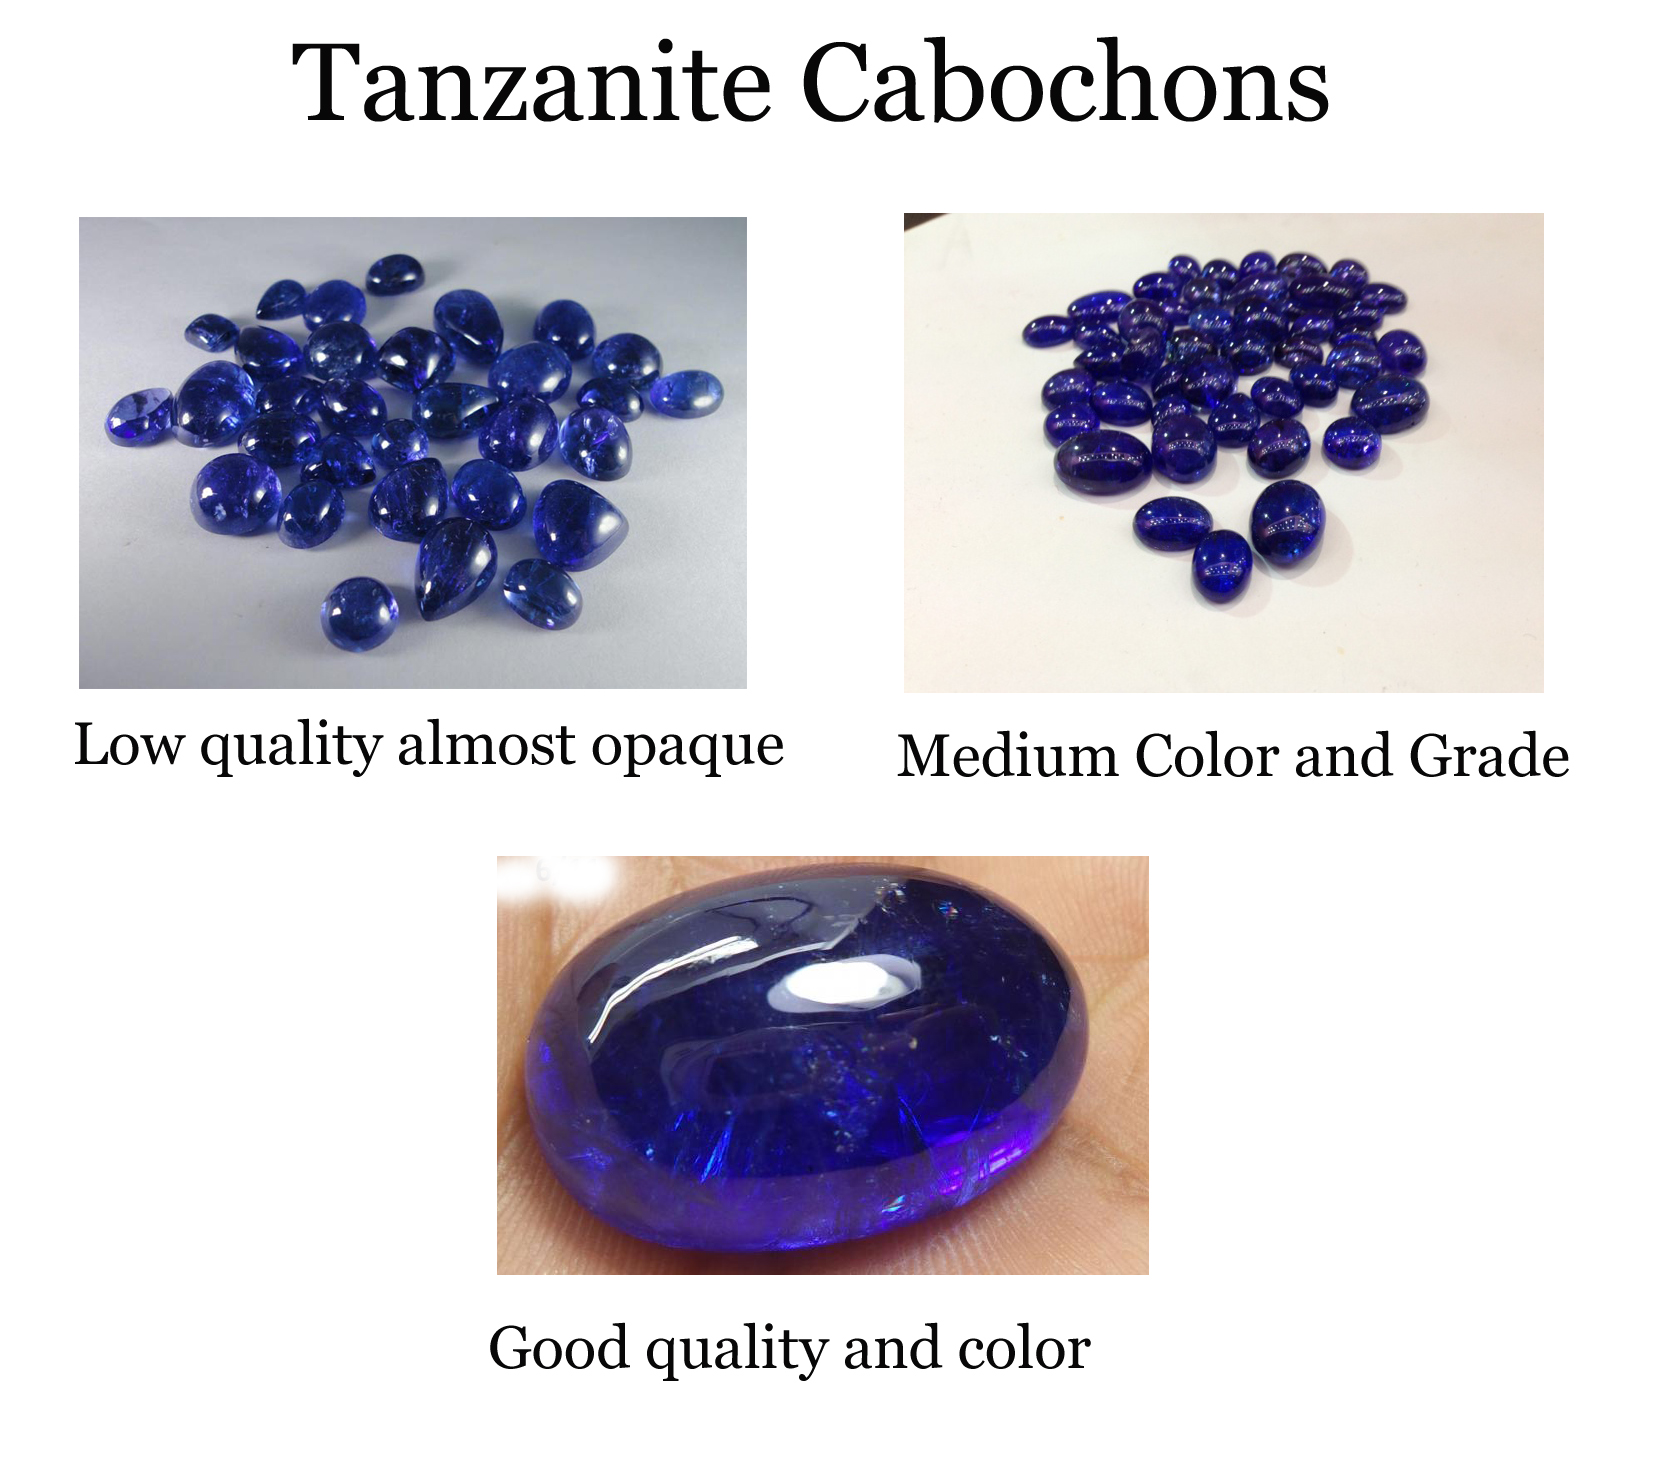 documentarytube tanzanite that articles you make gemstones can gemstone rich